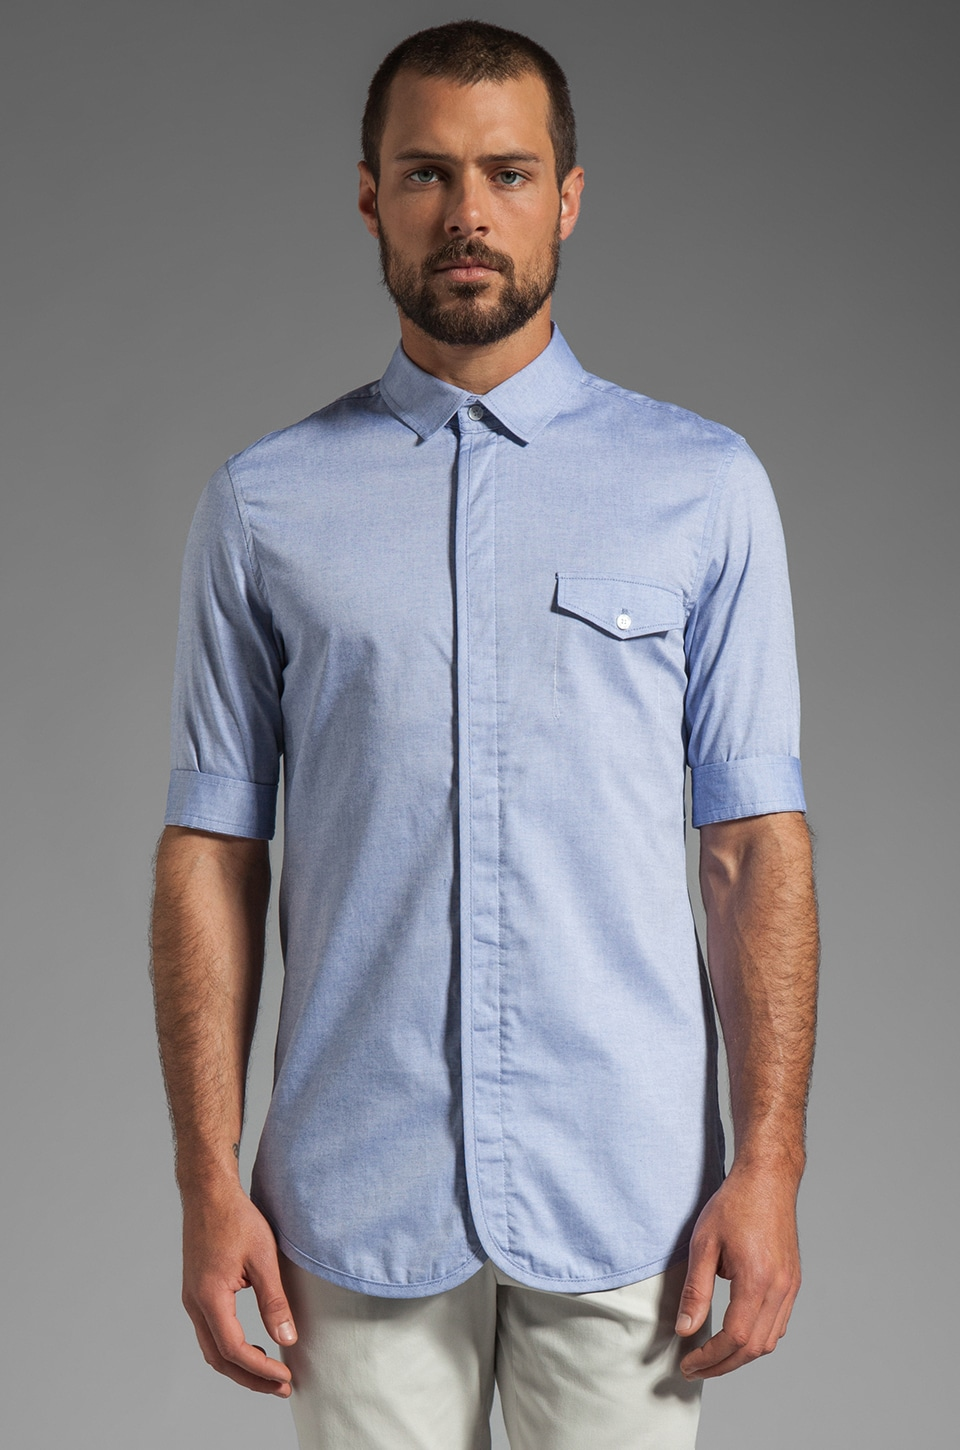 Kai-aakmann S/S Blocked Button Up in Blue